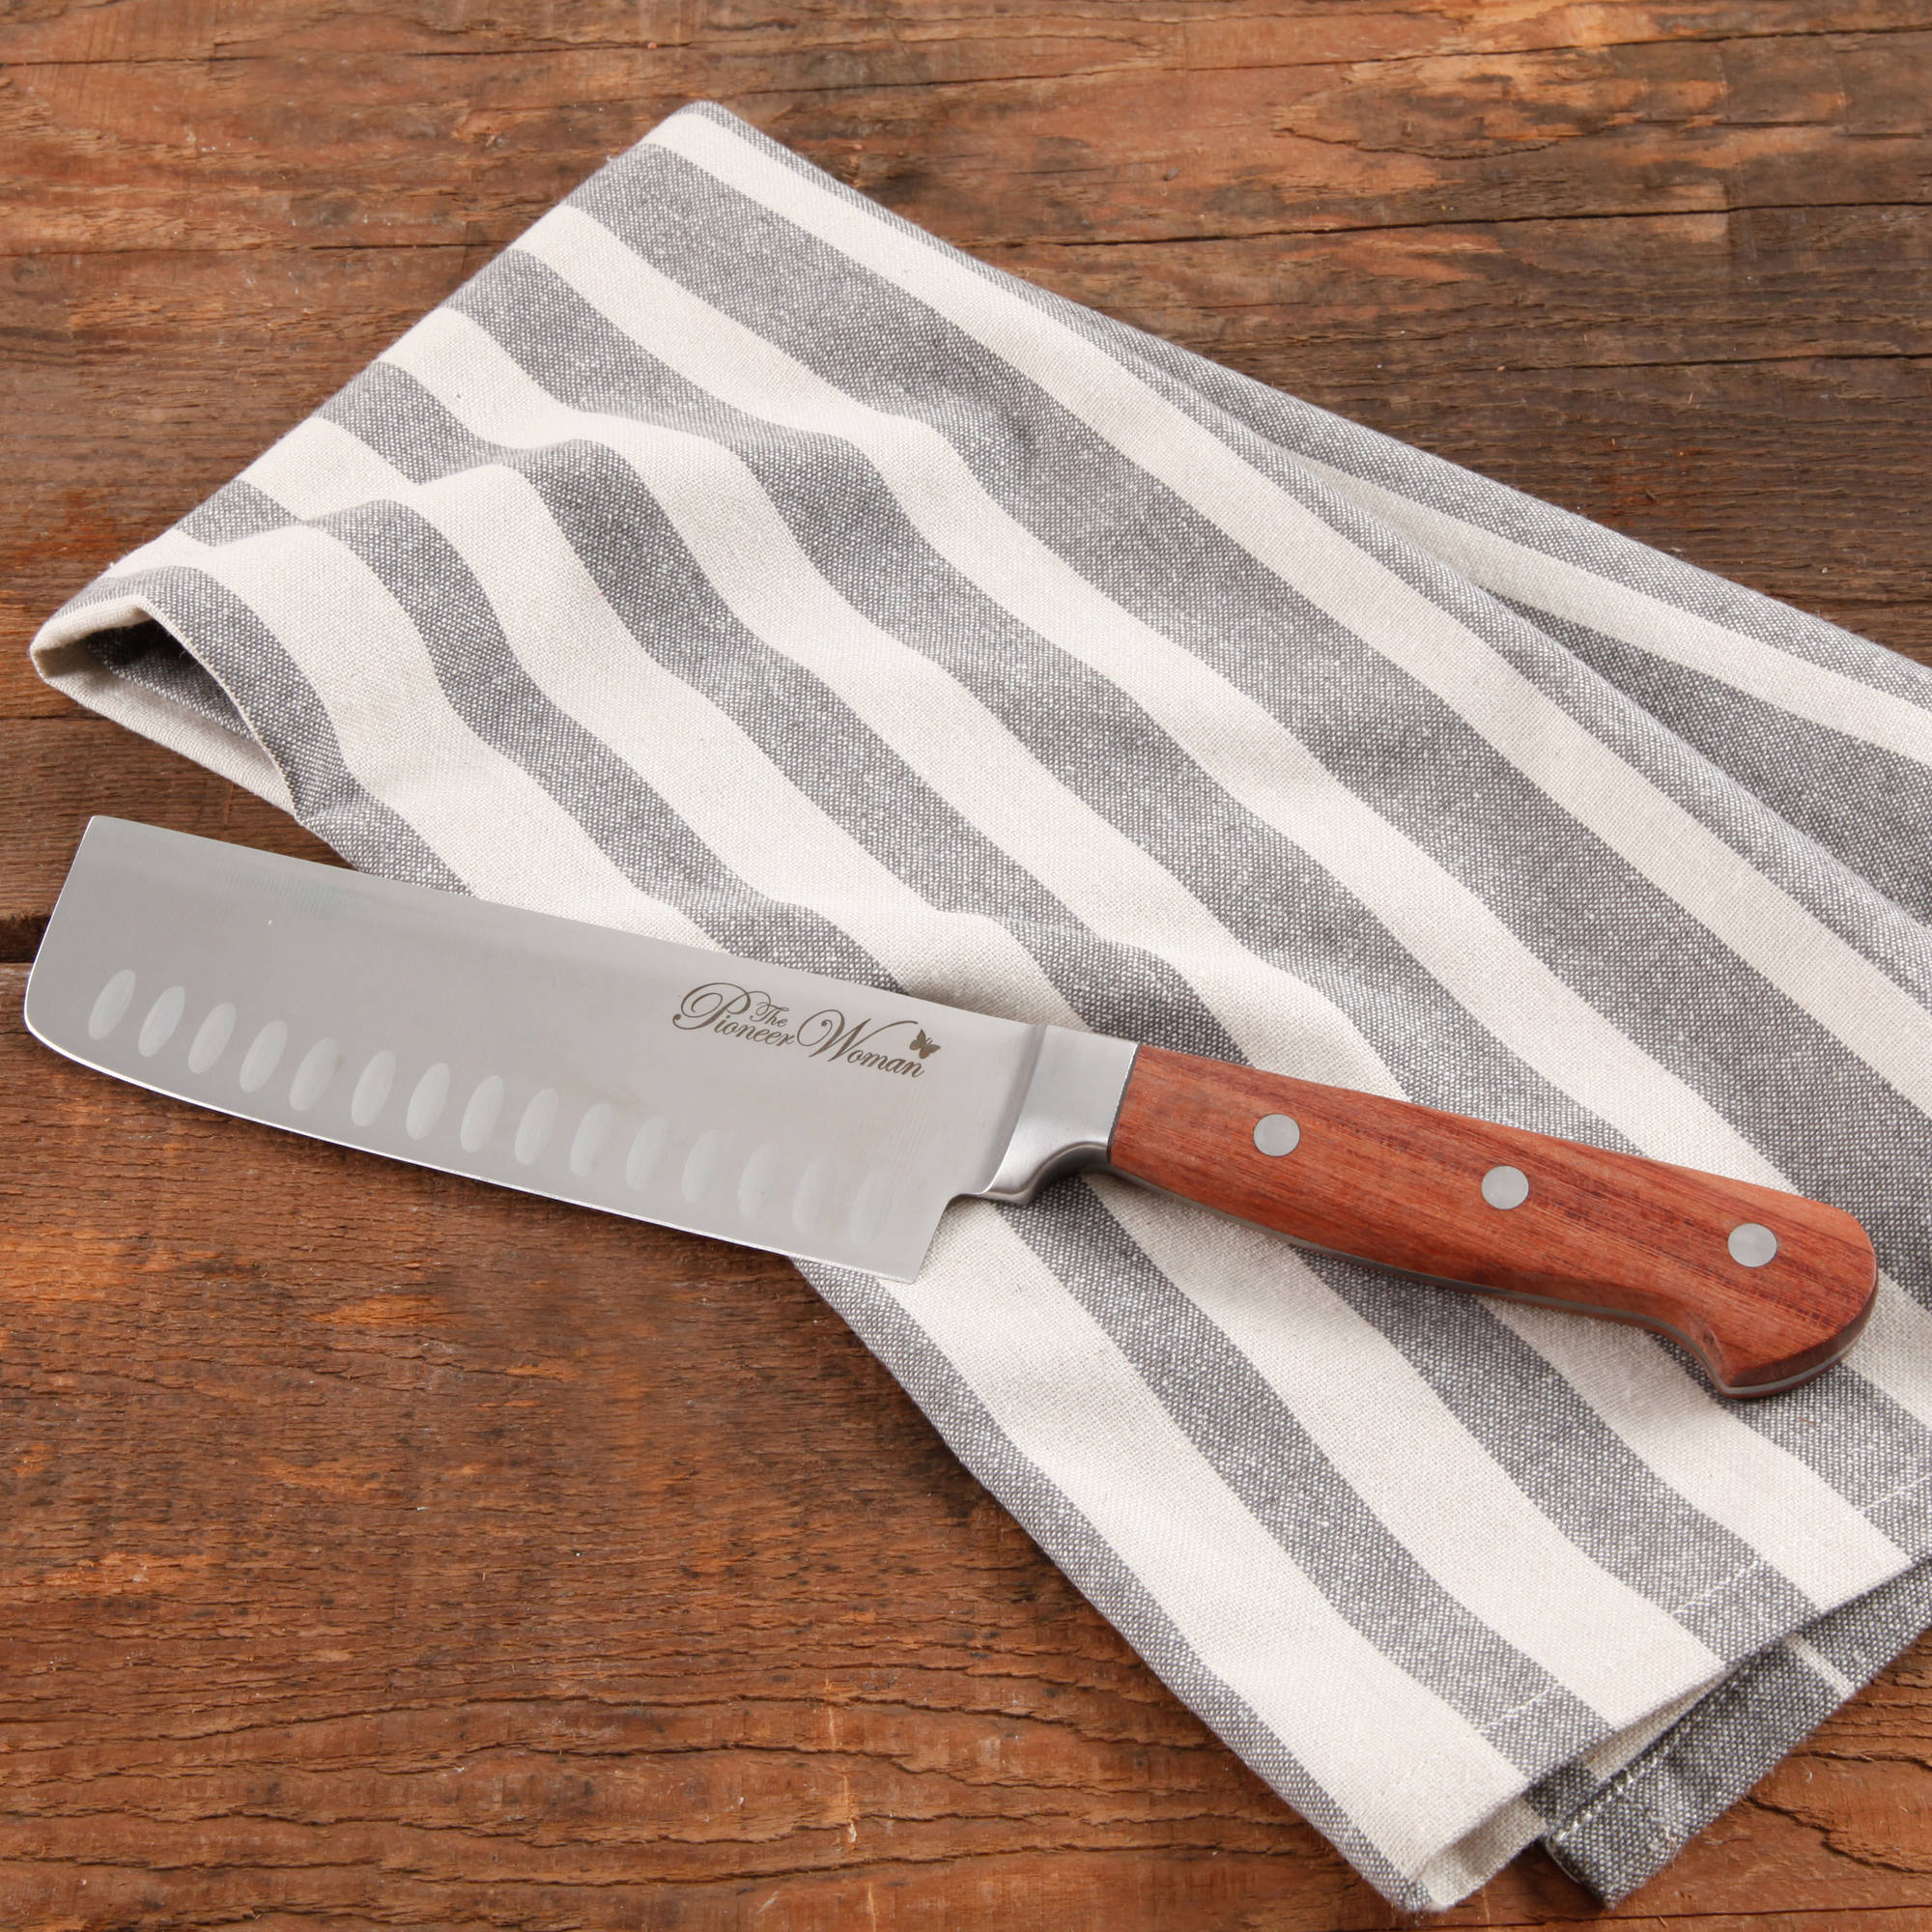 The Pioneer Woman Rosewood Handle Signature Knife   Walmart.com